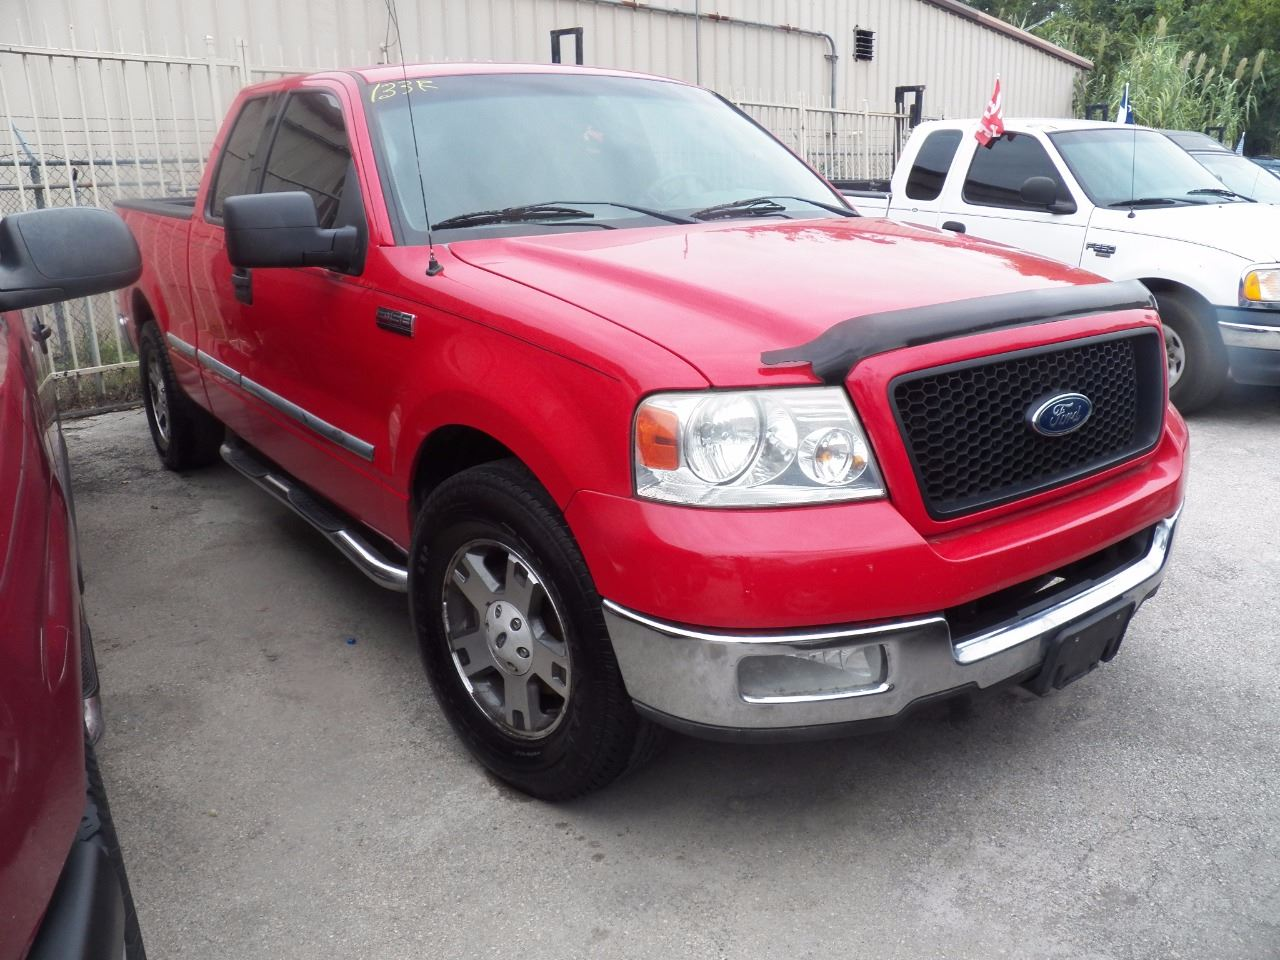 2004 ford f 150 4dr supercab lariat rwd styleside 5 5 ft sb in houston tx fredy used car sales. Black Bedroom Furniture Sets. Home Design Ideas